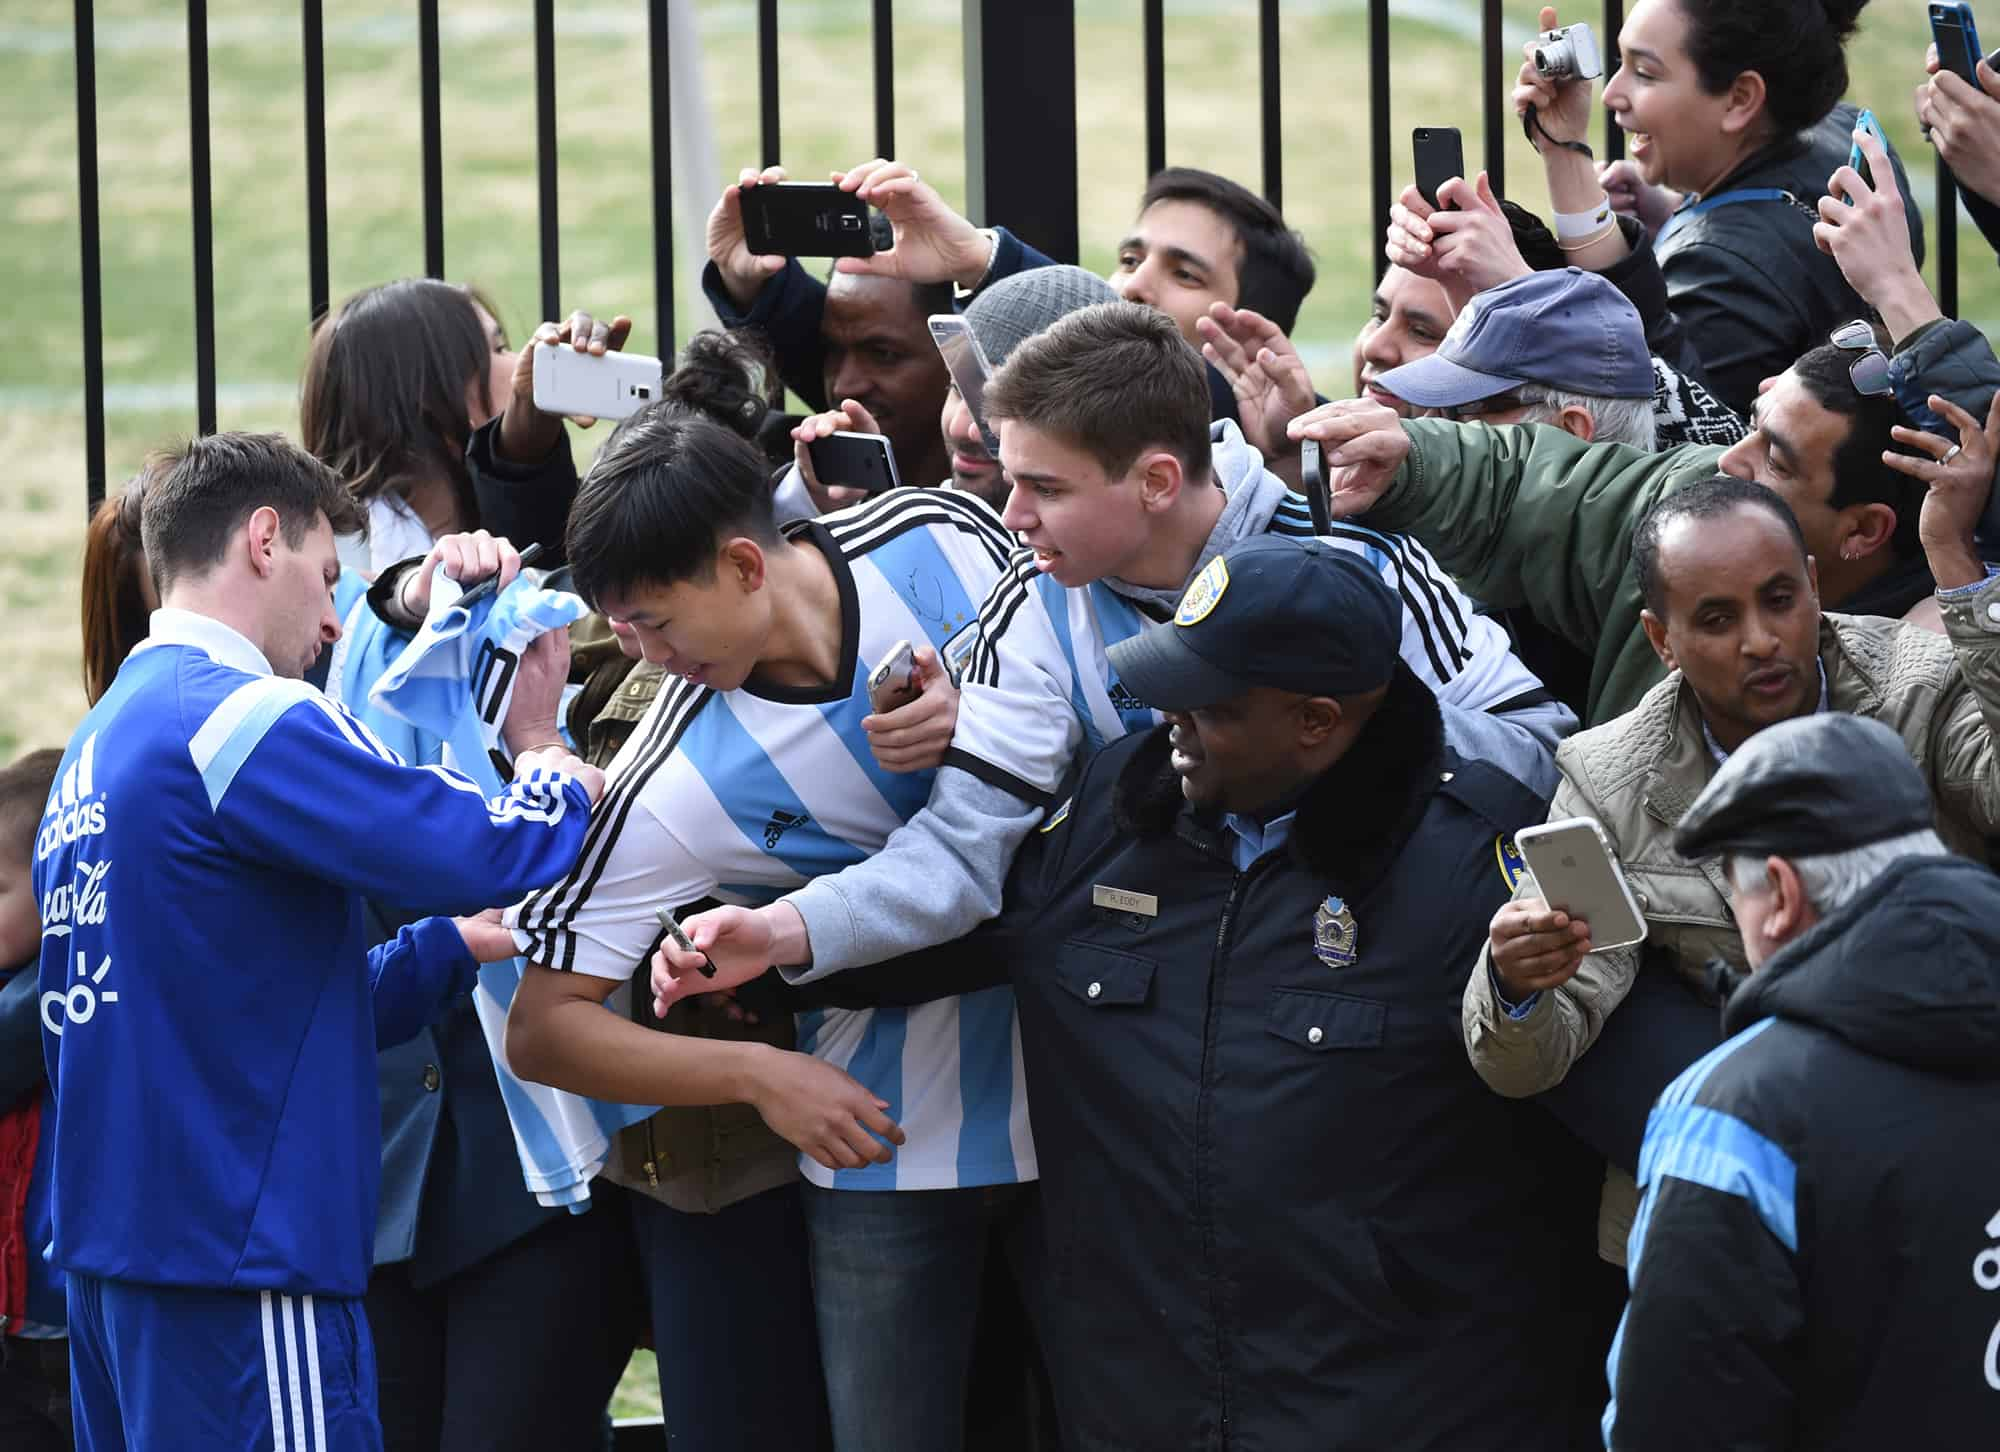 Lionel Messi, left, signs autographs for some of the hundreds of fans who showed up for a glimpse of the Argentine national team's practice at Georgetown University in Washington, March 24, 2015.